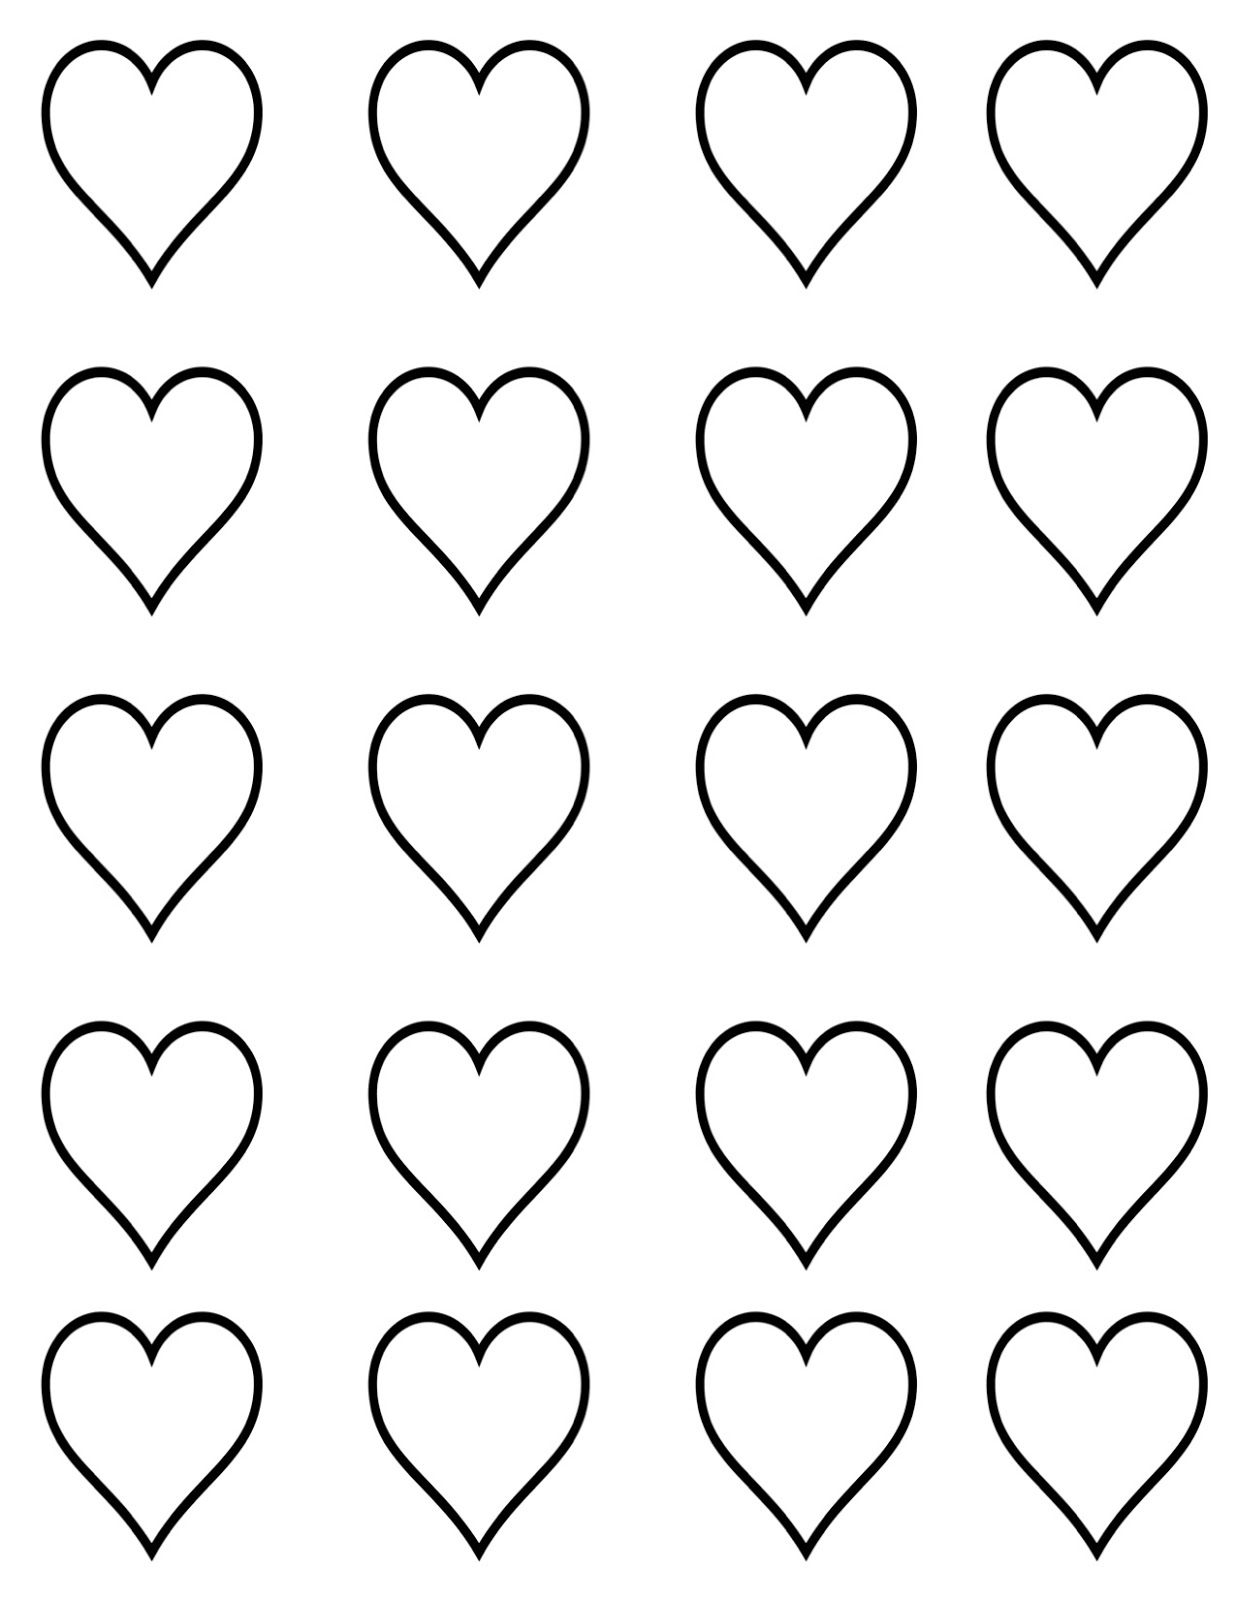 Mini Printable Heart Template Pictures to Pin PinsDaddy – Heart Template